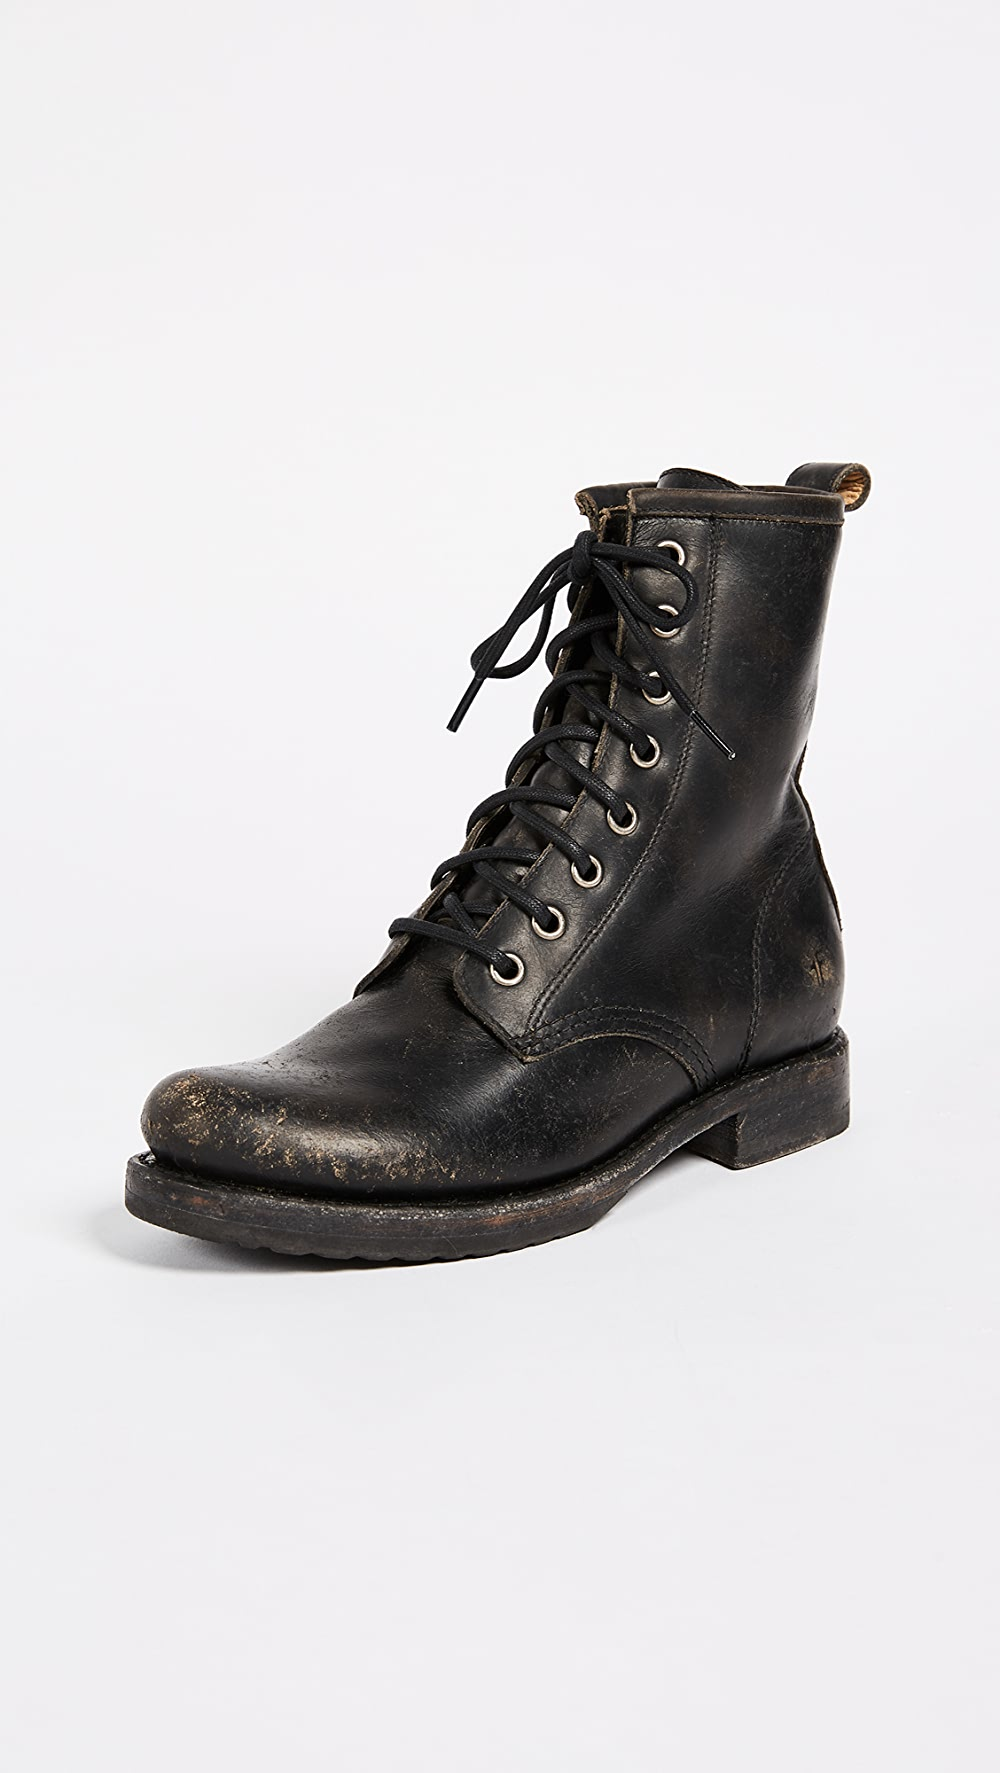 Capable Frye - Veronica Combat Boots Cheap Sales 50%